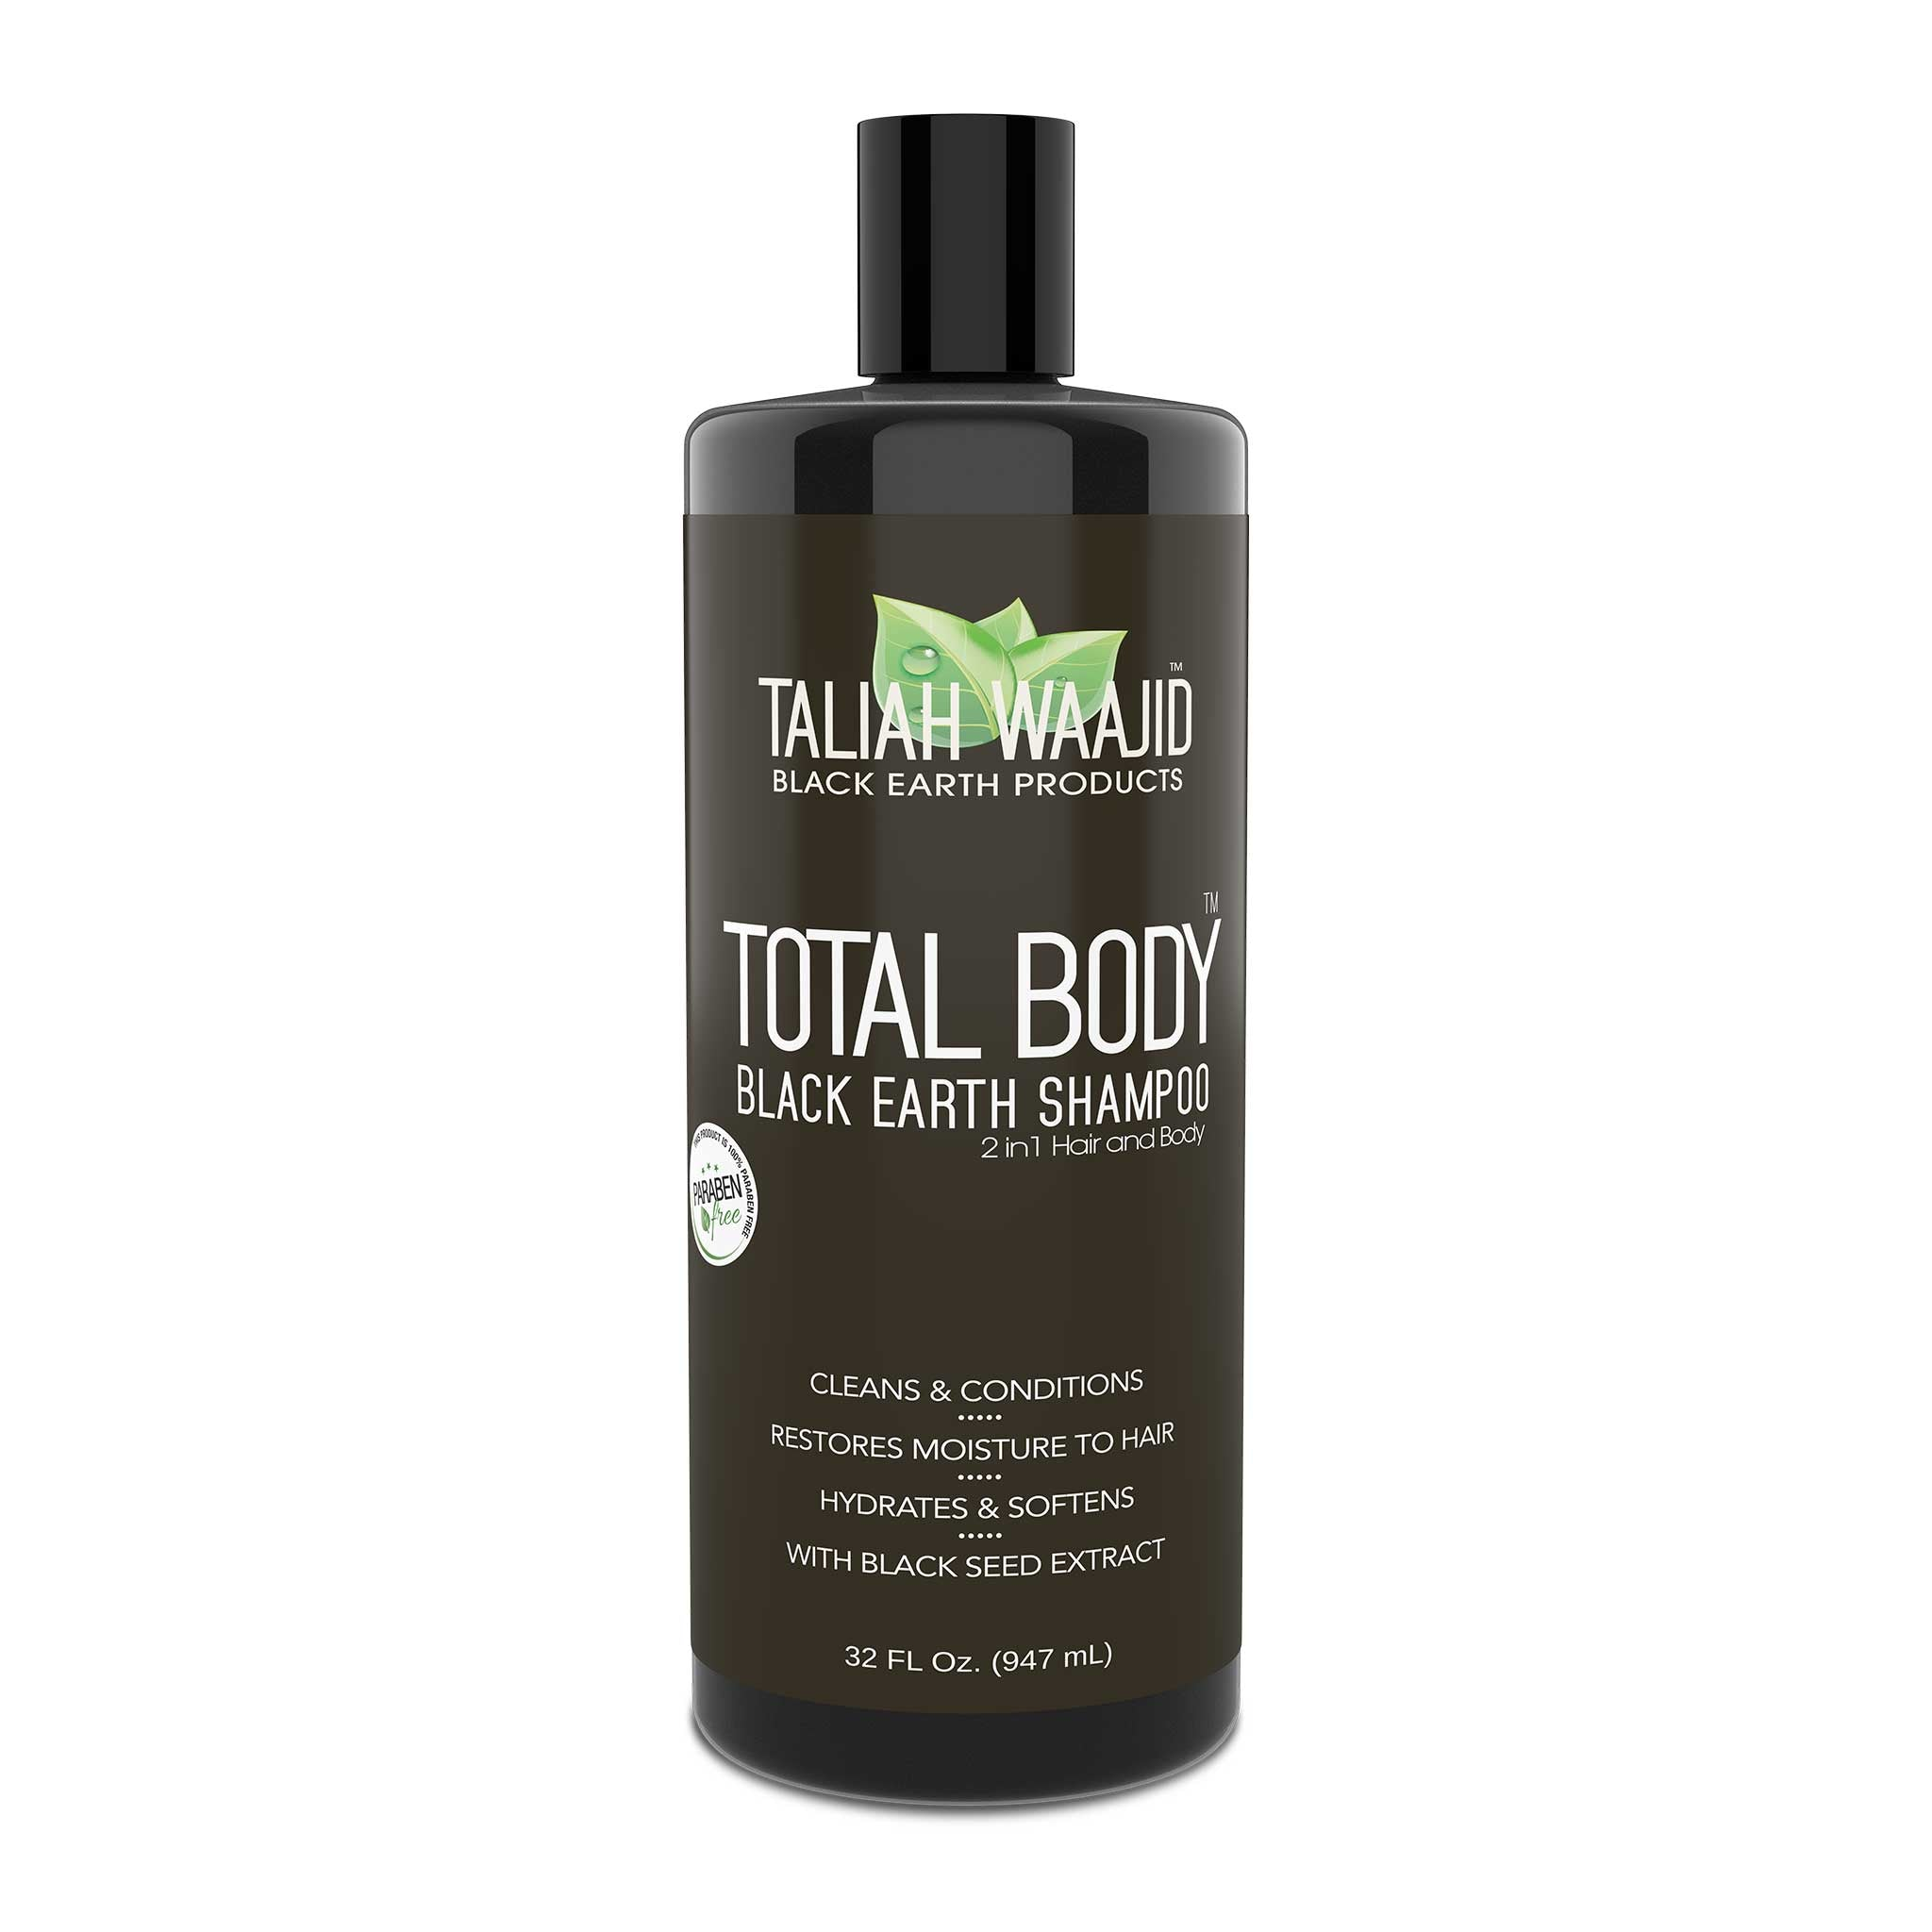 Total Body Black Earth Shampoo 32oz